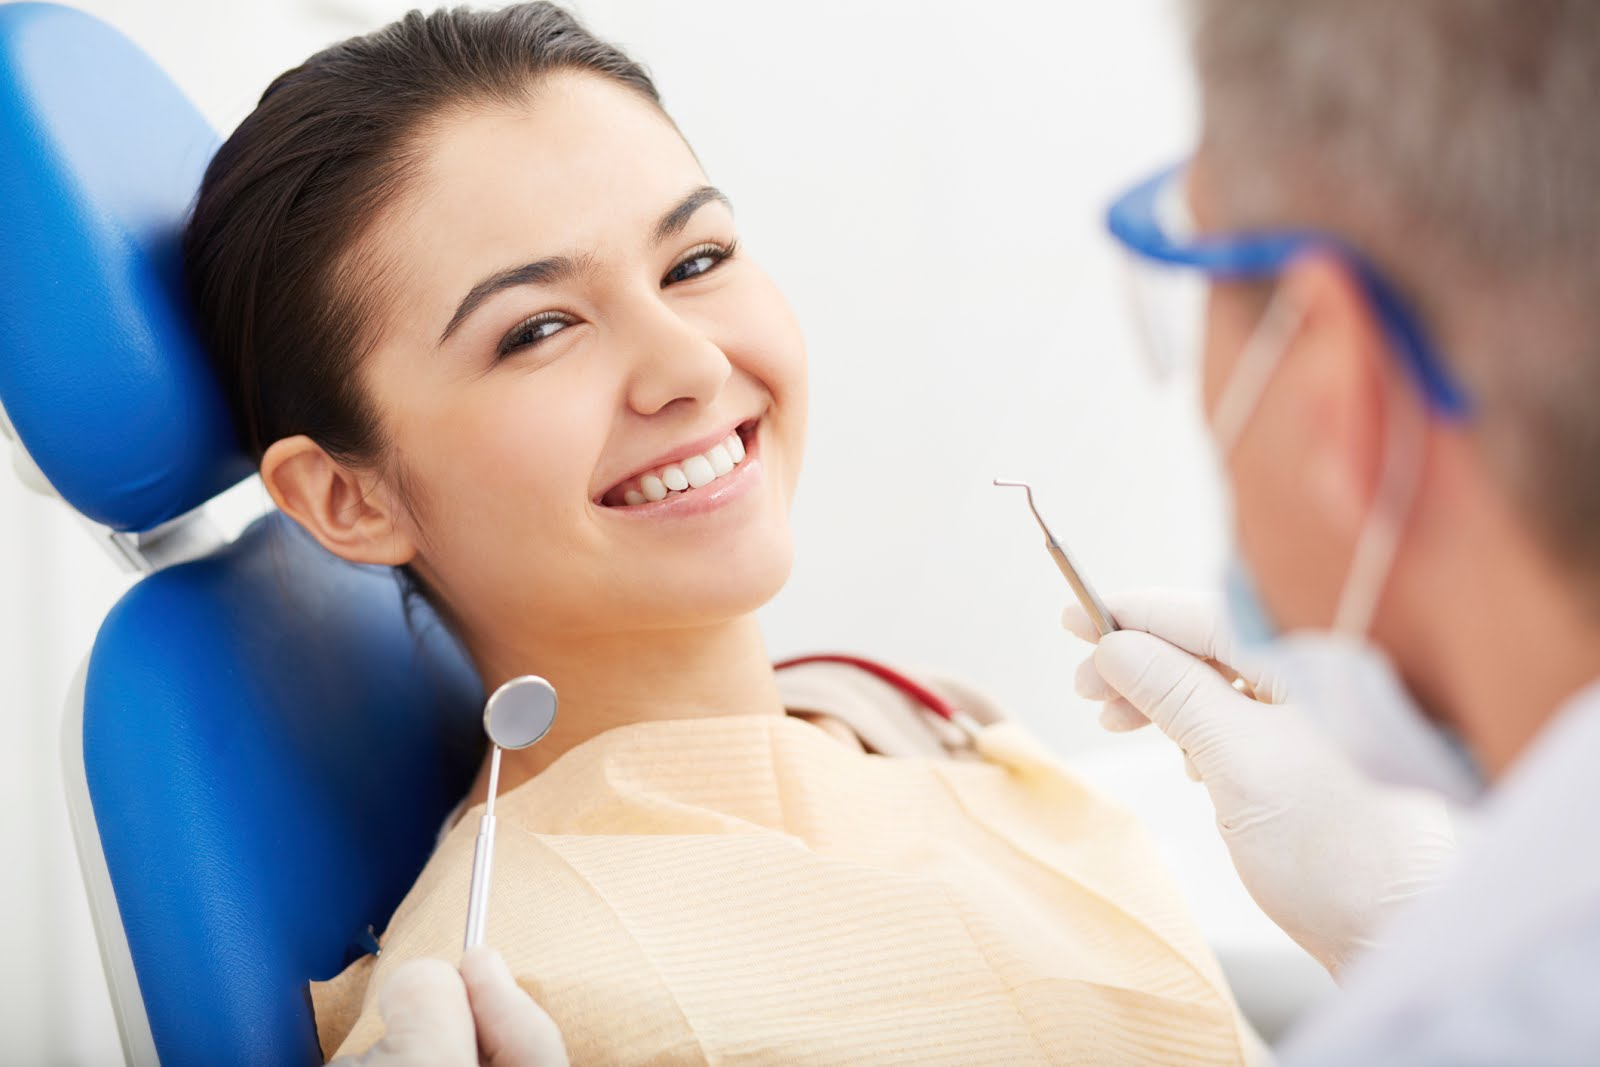 How to make the most out of your dentist visits